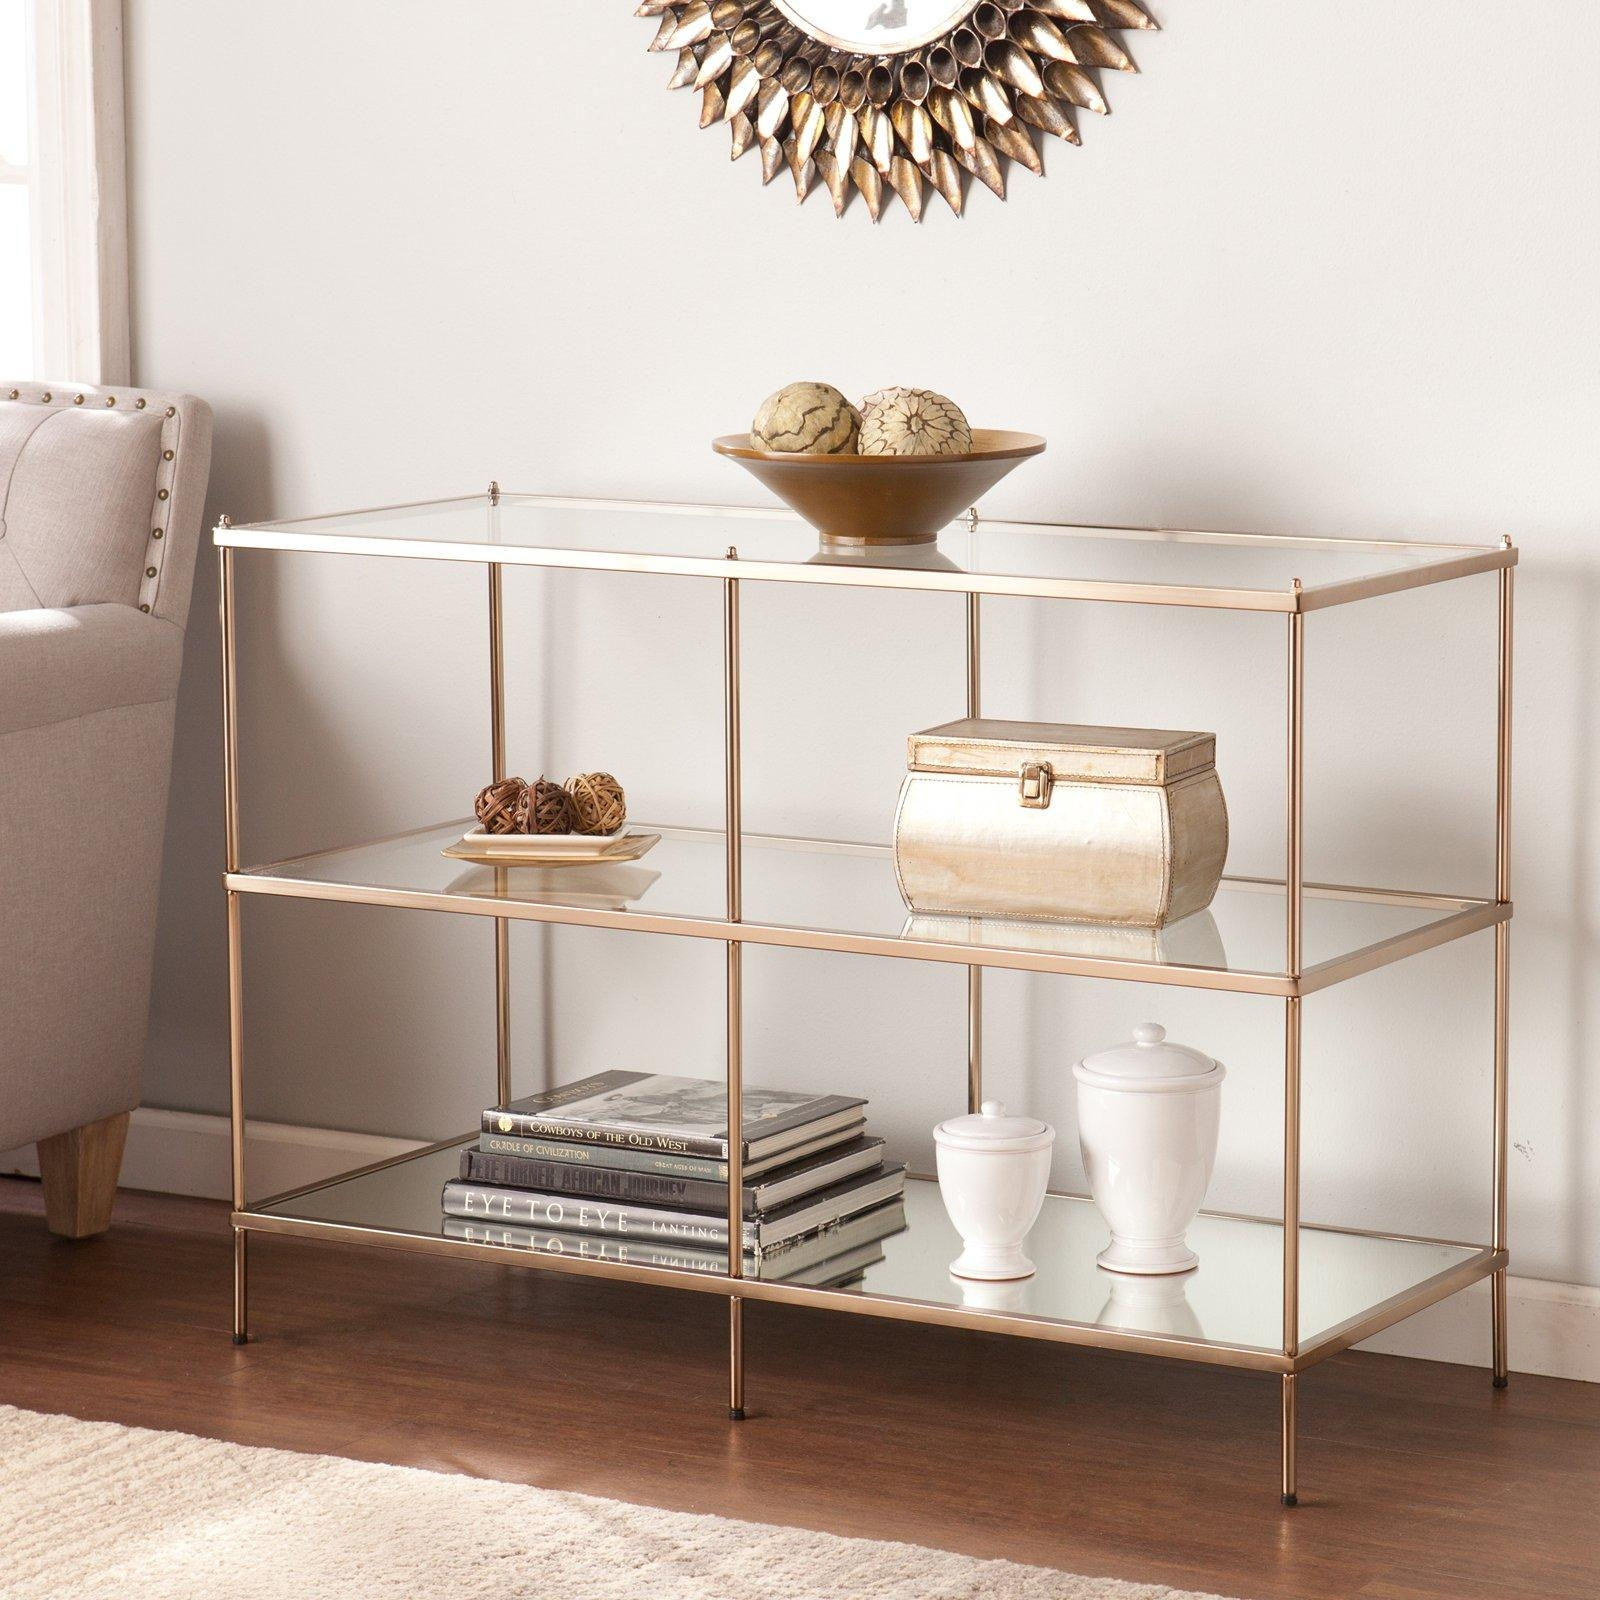 Belham Living Lamont Sofa Table – Gold | Hayneedle Pertaining To Gold Sofa Tables (Image 2 of 20)